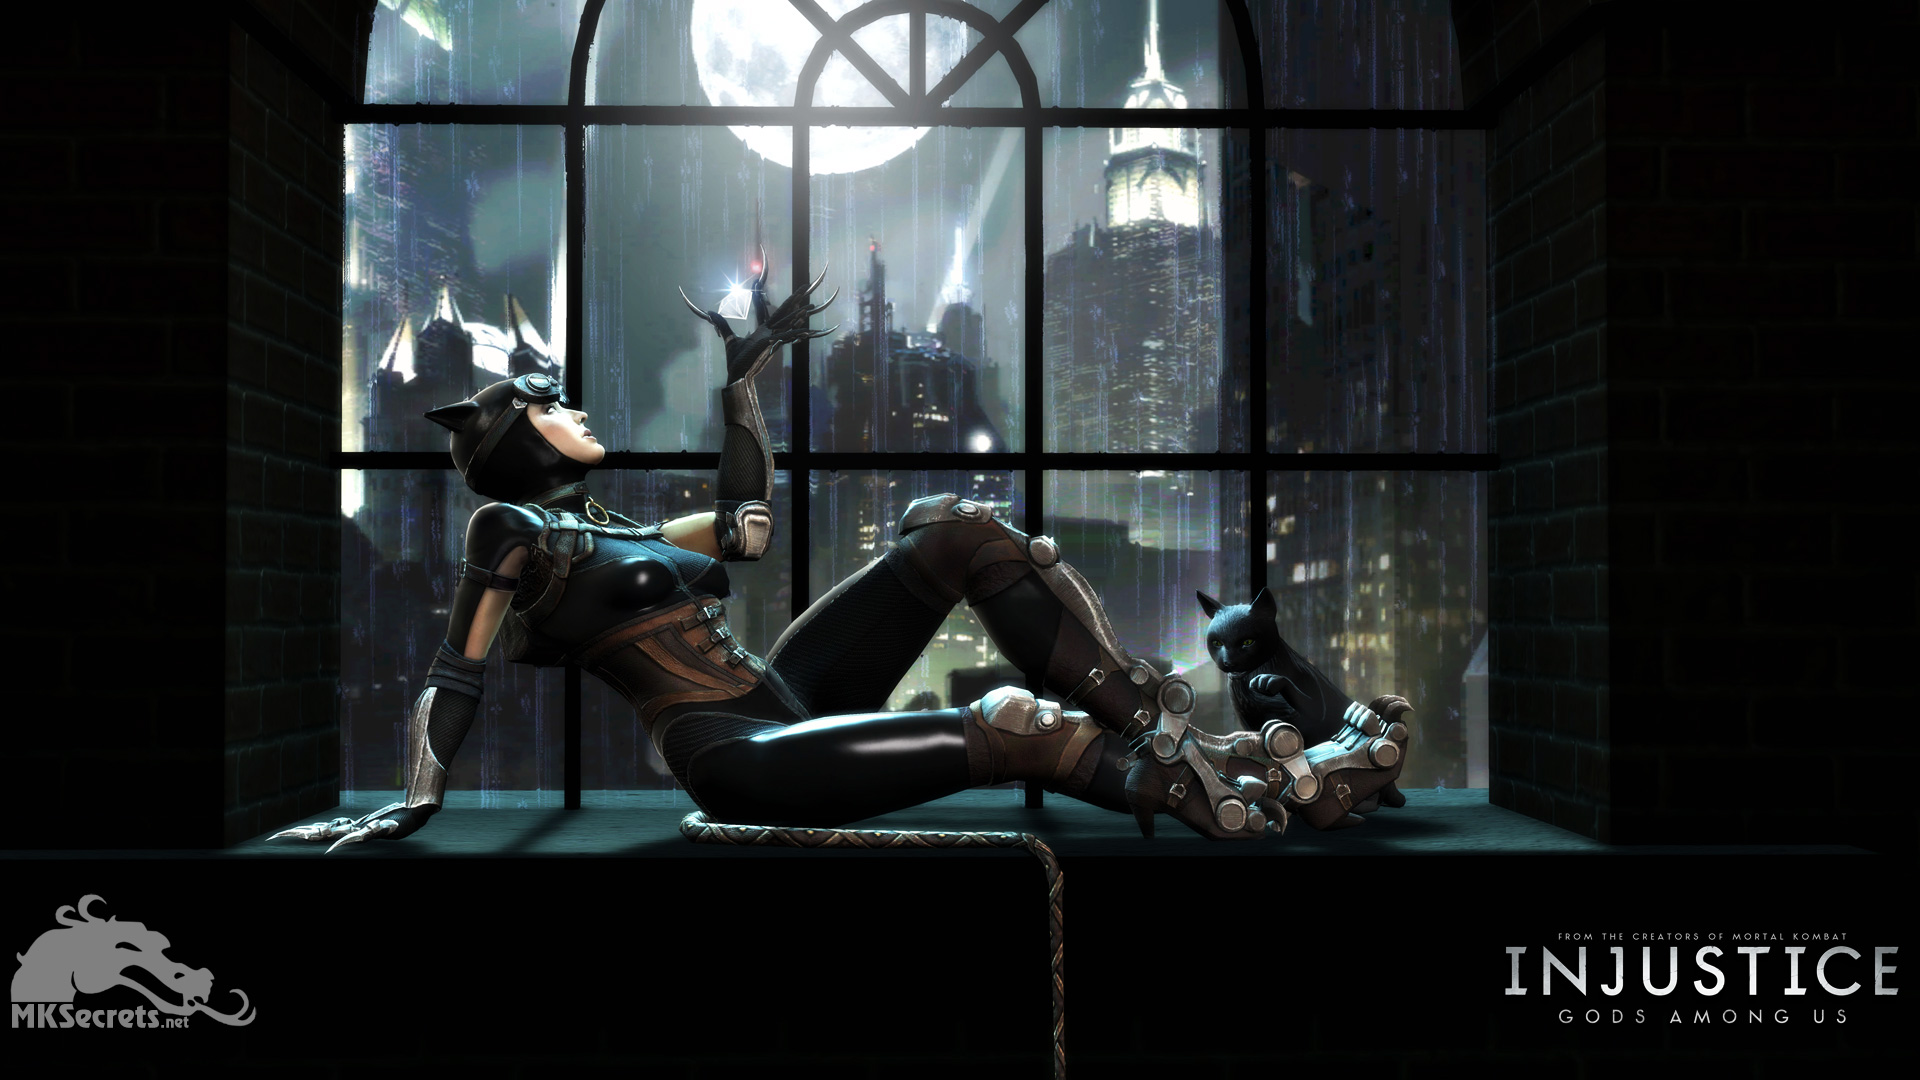 Halle Berry Catwoman Wallpapers in jpg format for free download